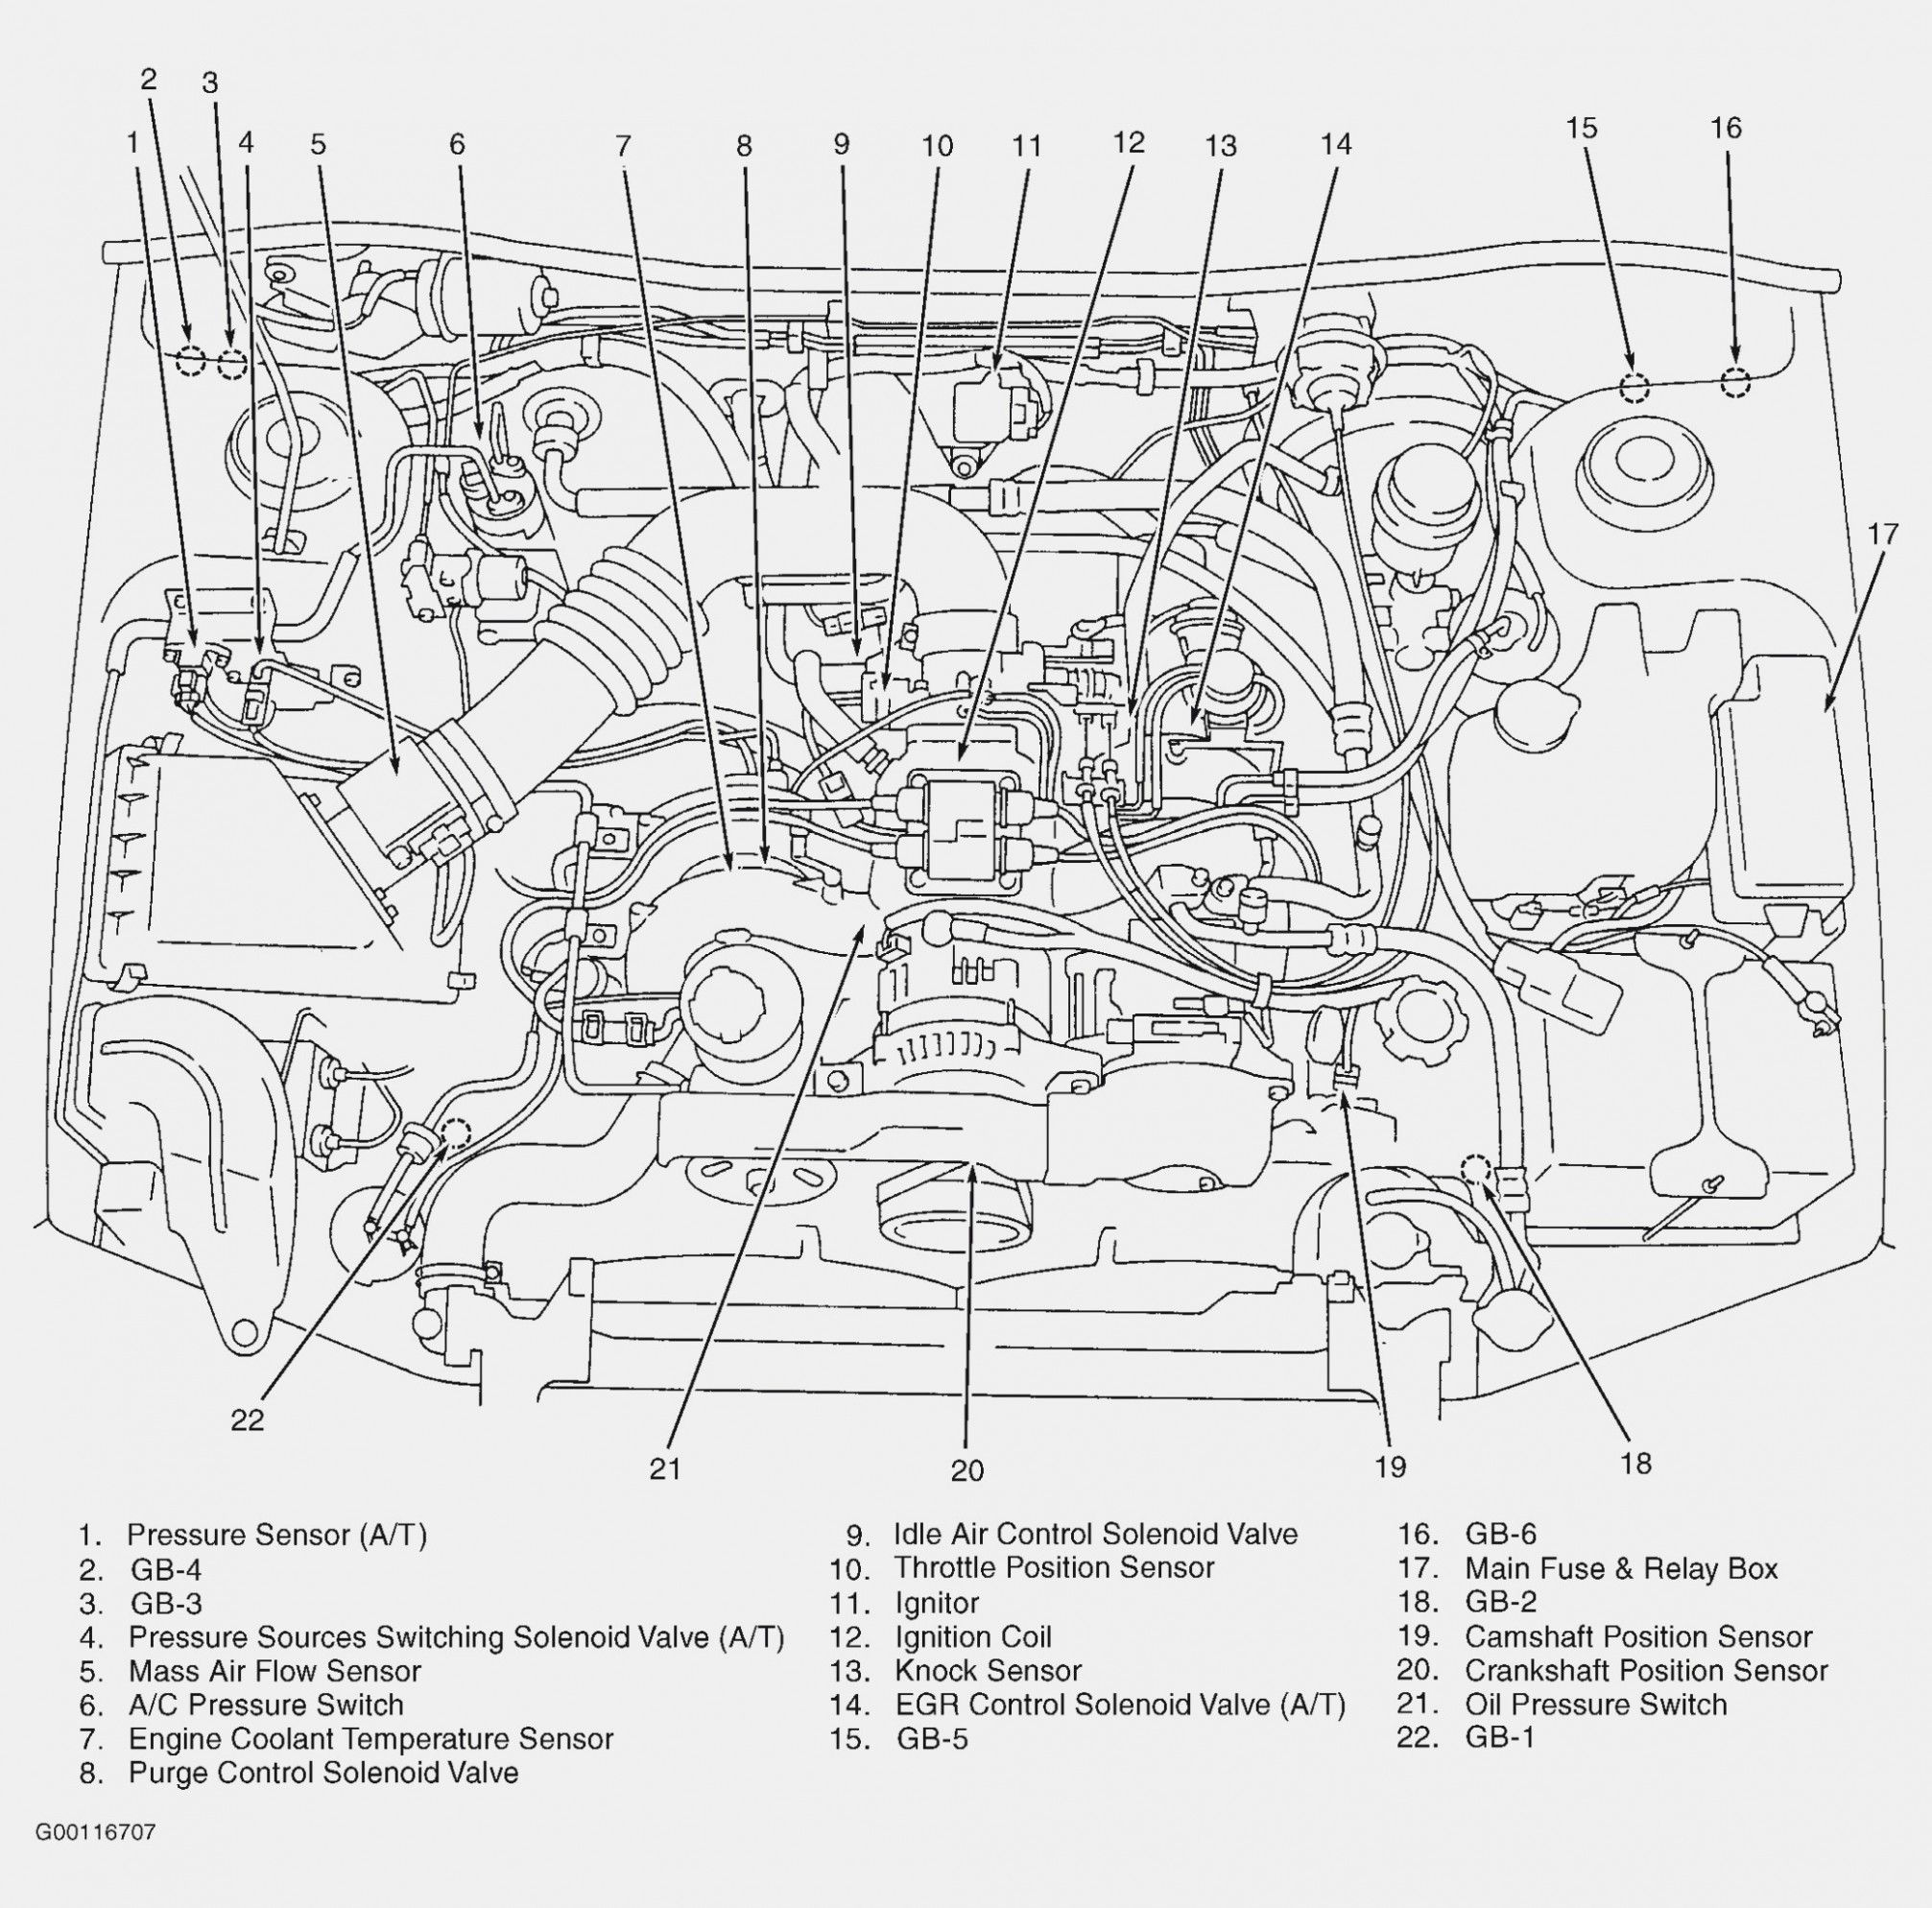 4 Subaru Tribeca Engine Diagram 4 Subaru Tribeca Engine